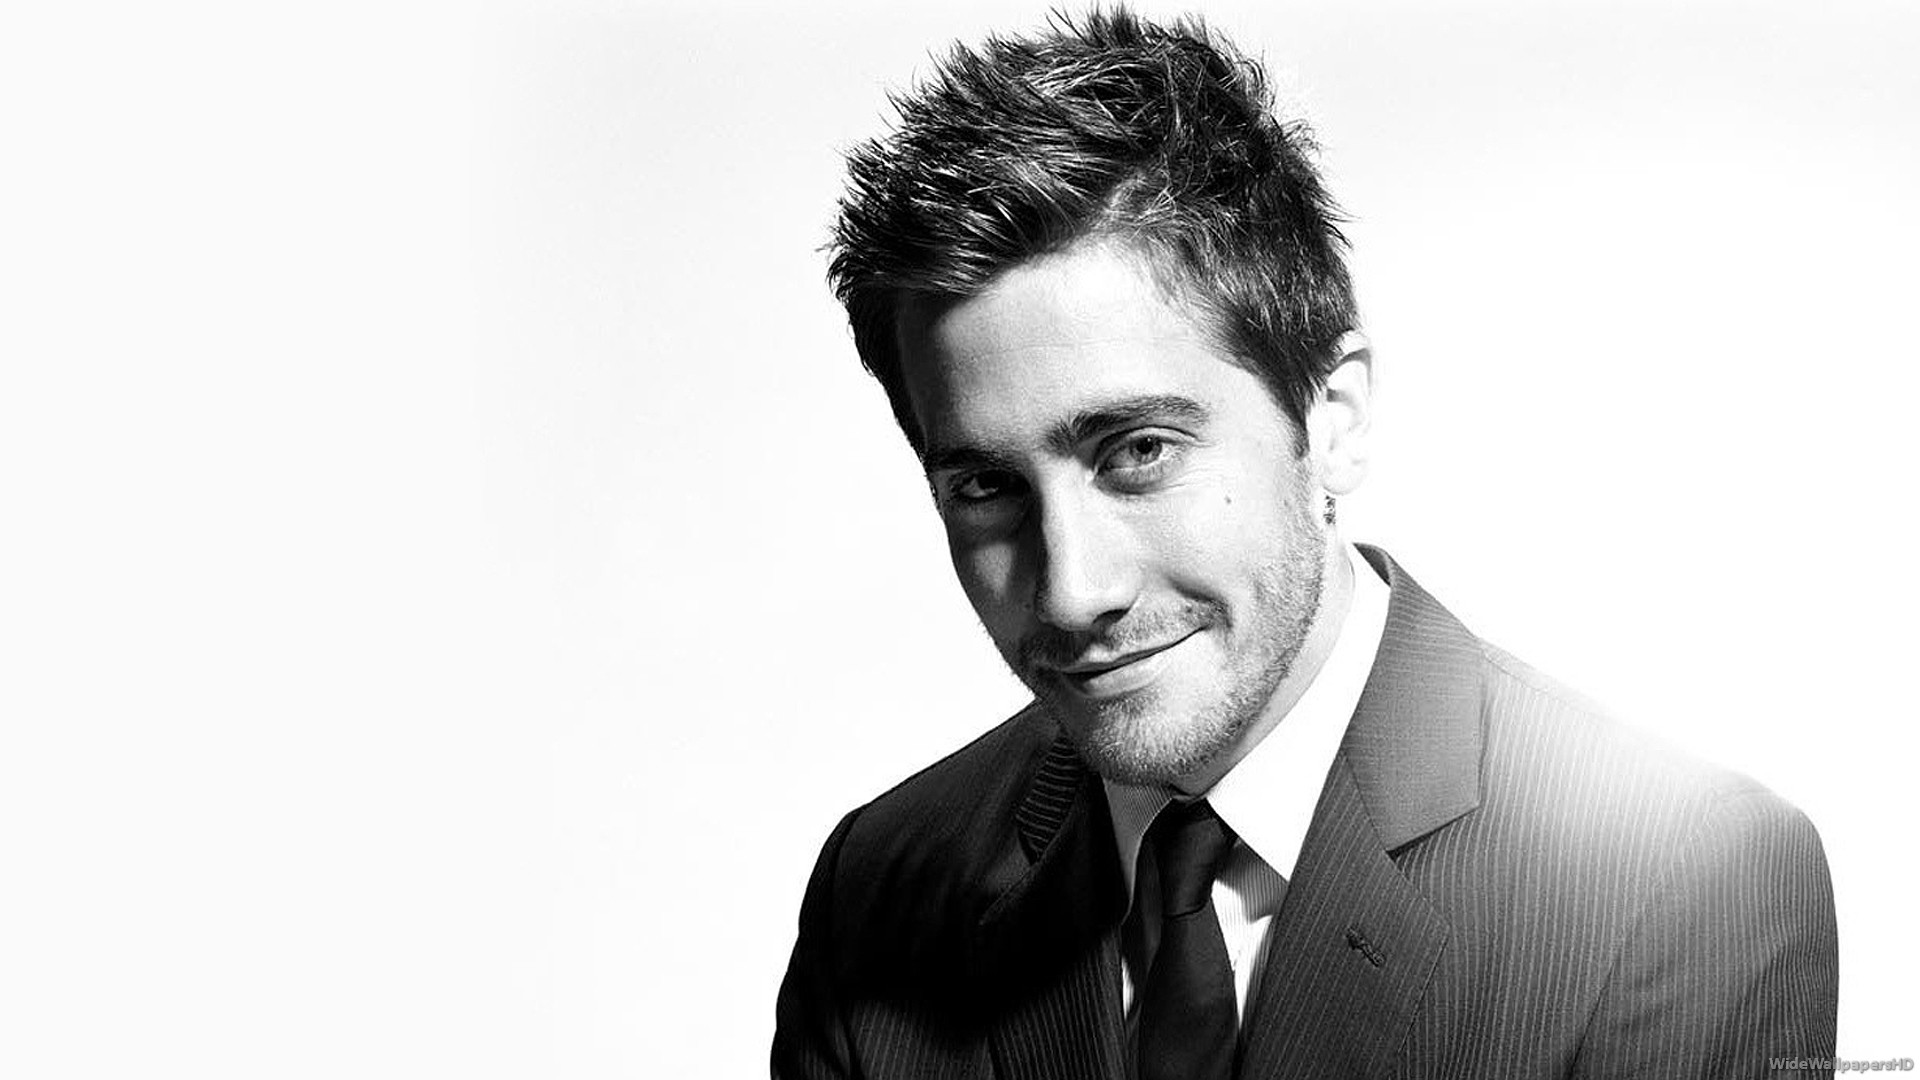 Jake Gyllenhaal Wallpaper 4   1920 X 1080 stmednet 1920x1080